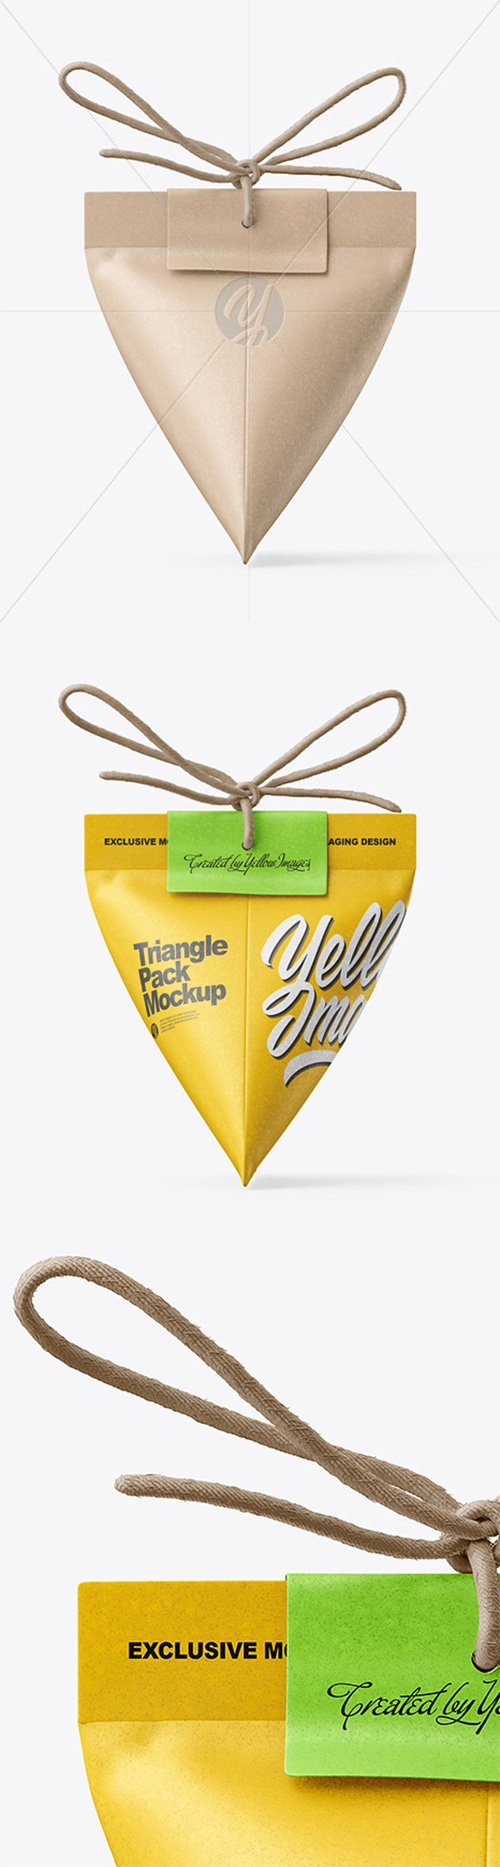 Triangle Kraft Paper Pack With Rope Bow Mockup 64556